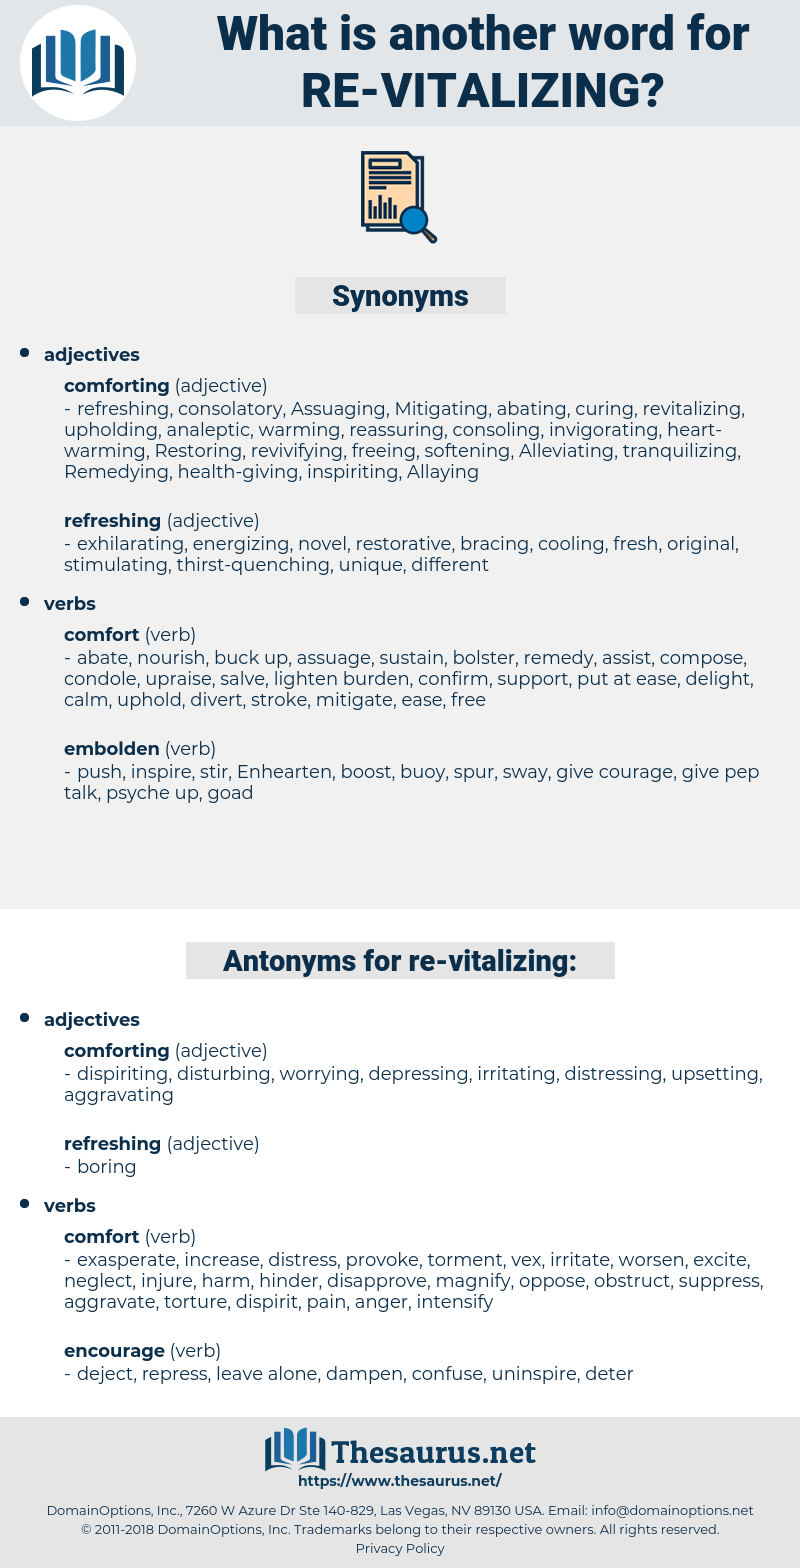 re vitalizing, synonym re vitalizing, another word for re vitalizing, words like re vitalizing, thesaurus re vitalizing